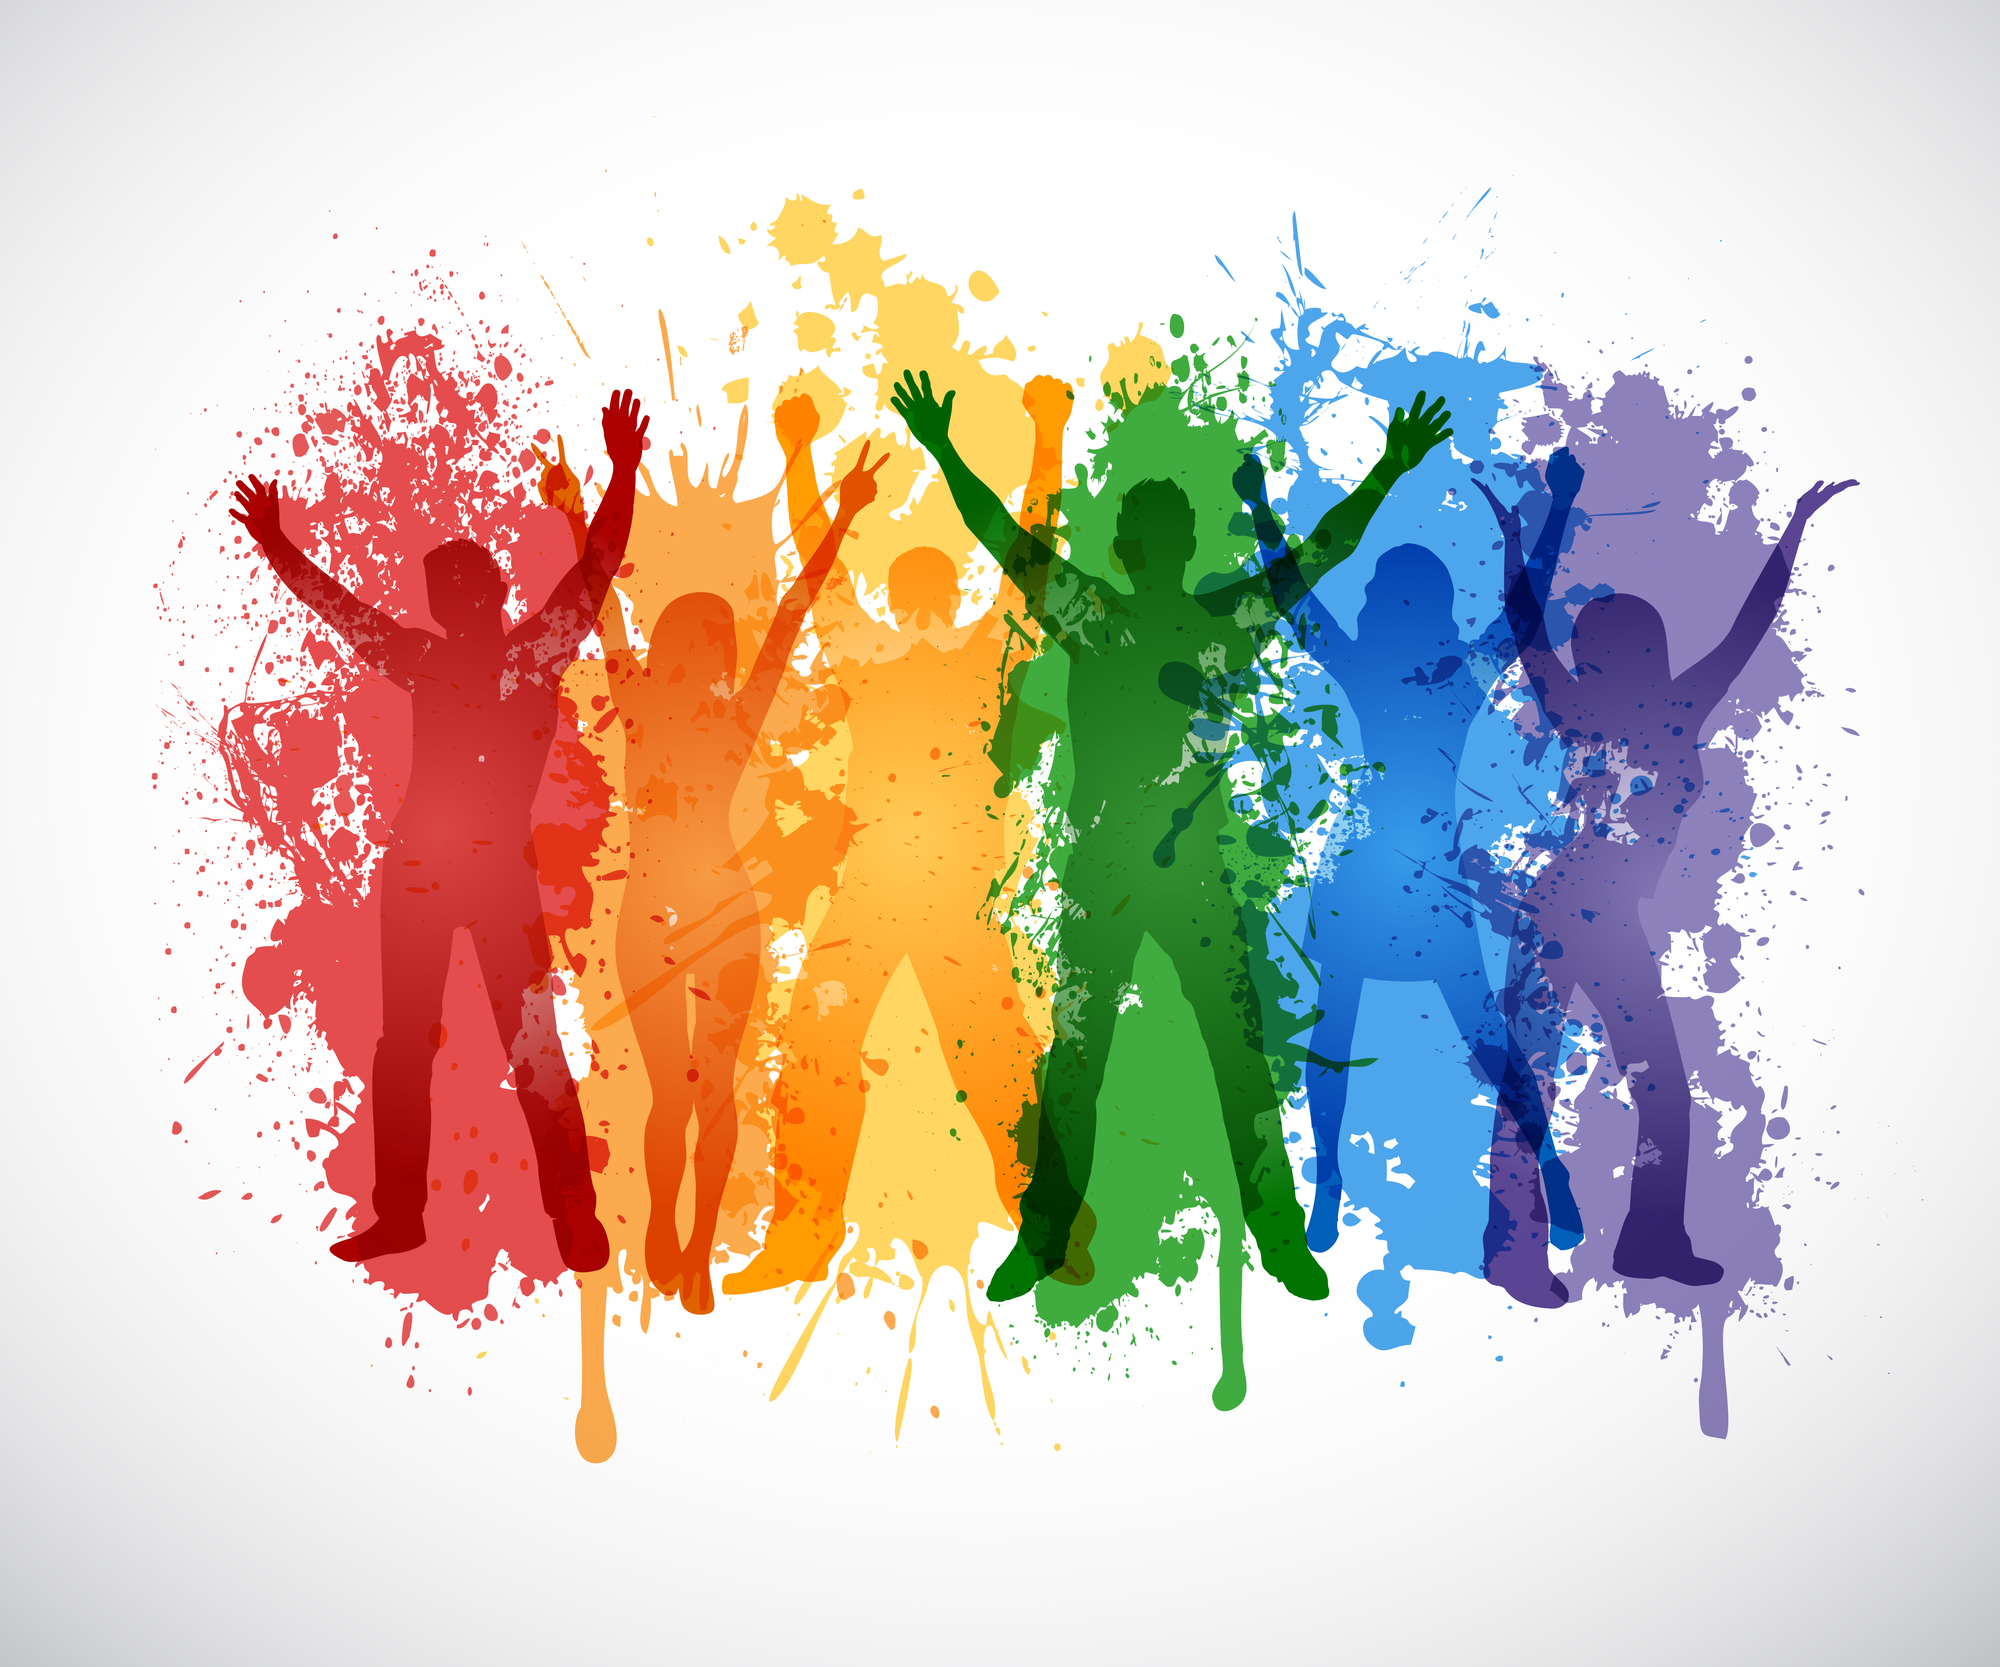 Graphic with various colors painted over silhouettes of people cheering